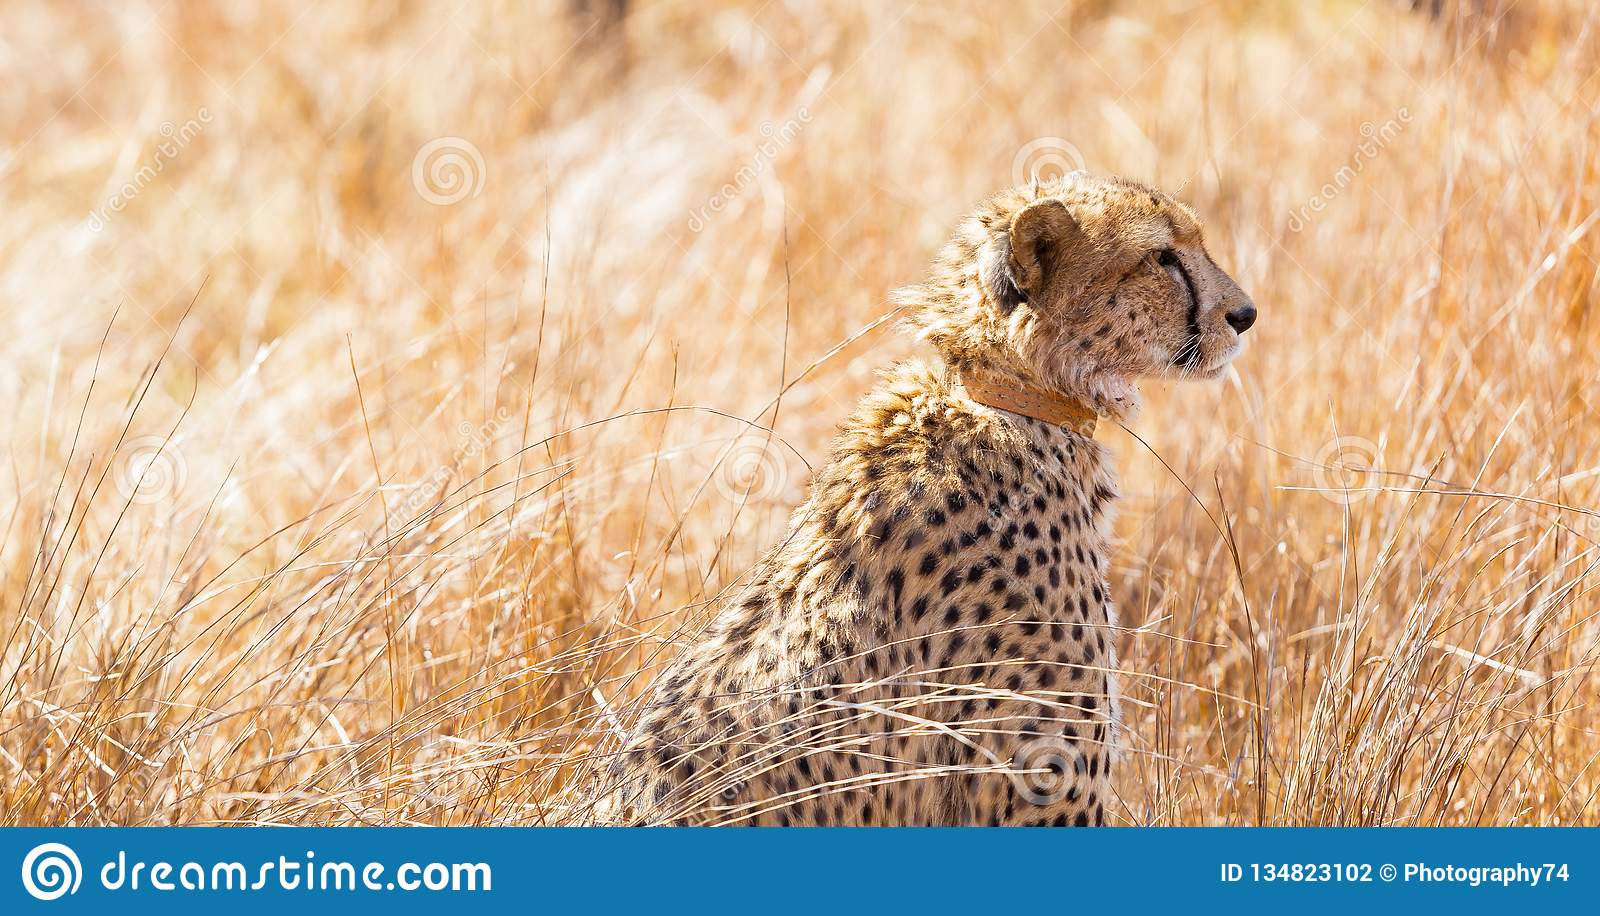 African Cheetah Sitting In Long Grass Stock Photo Image Of